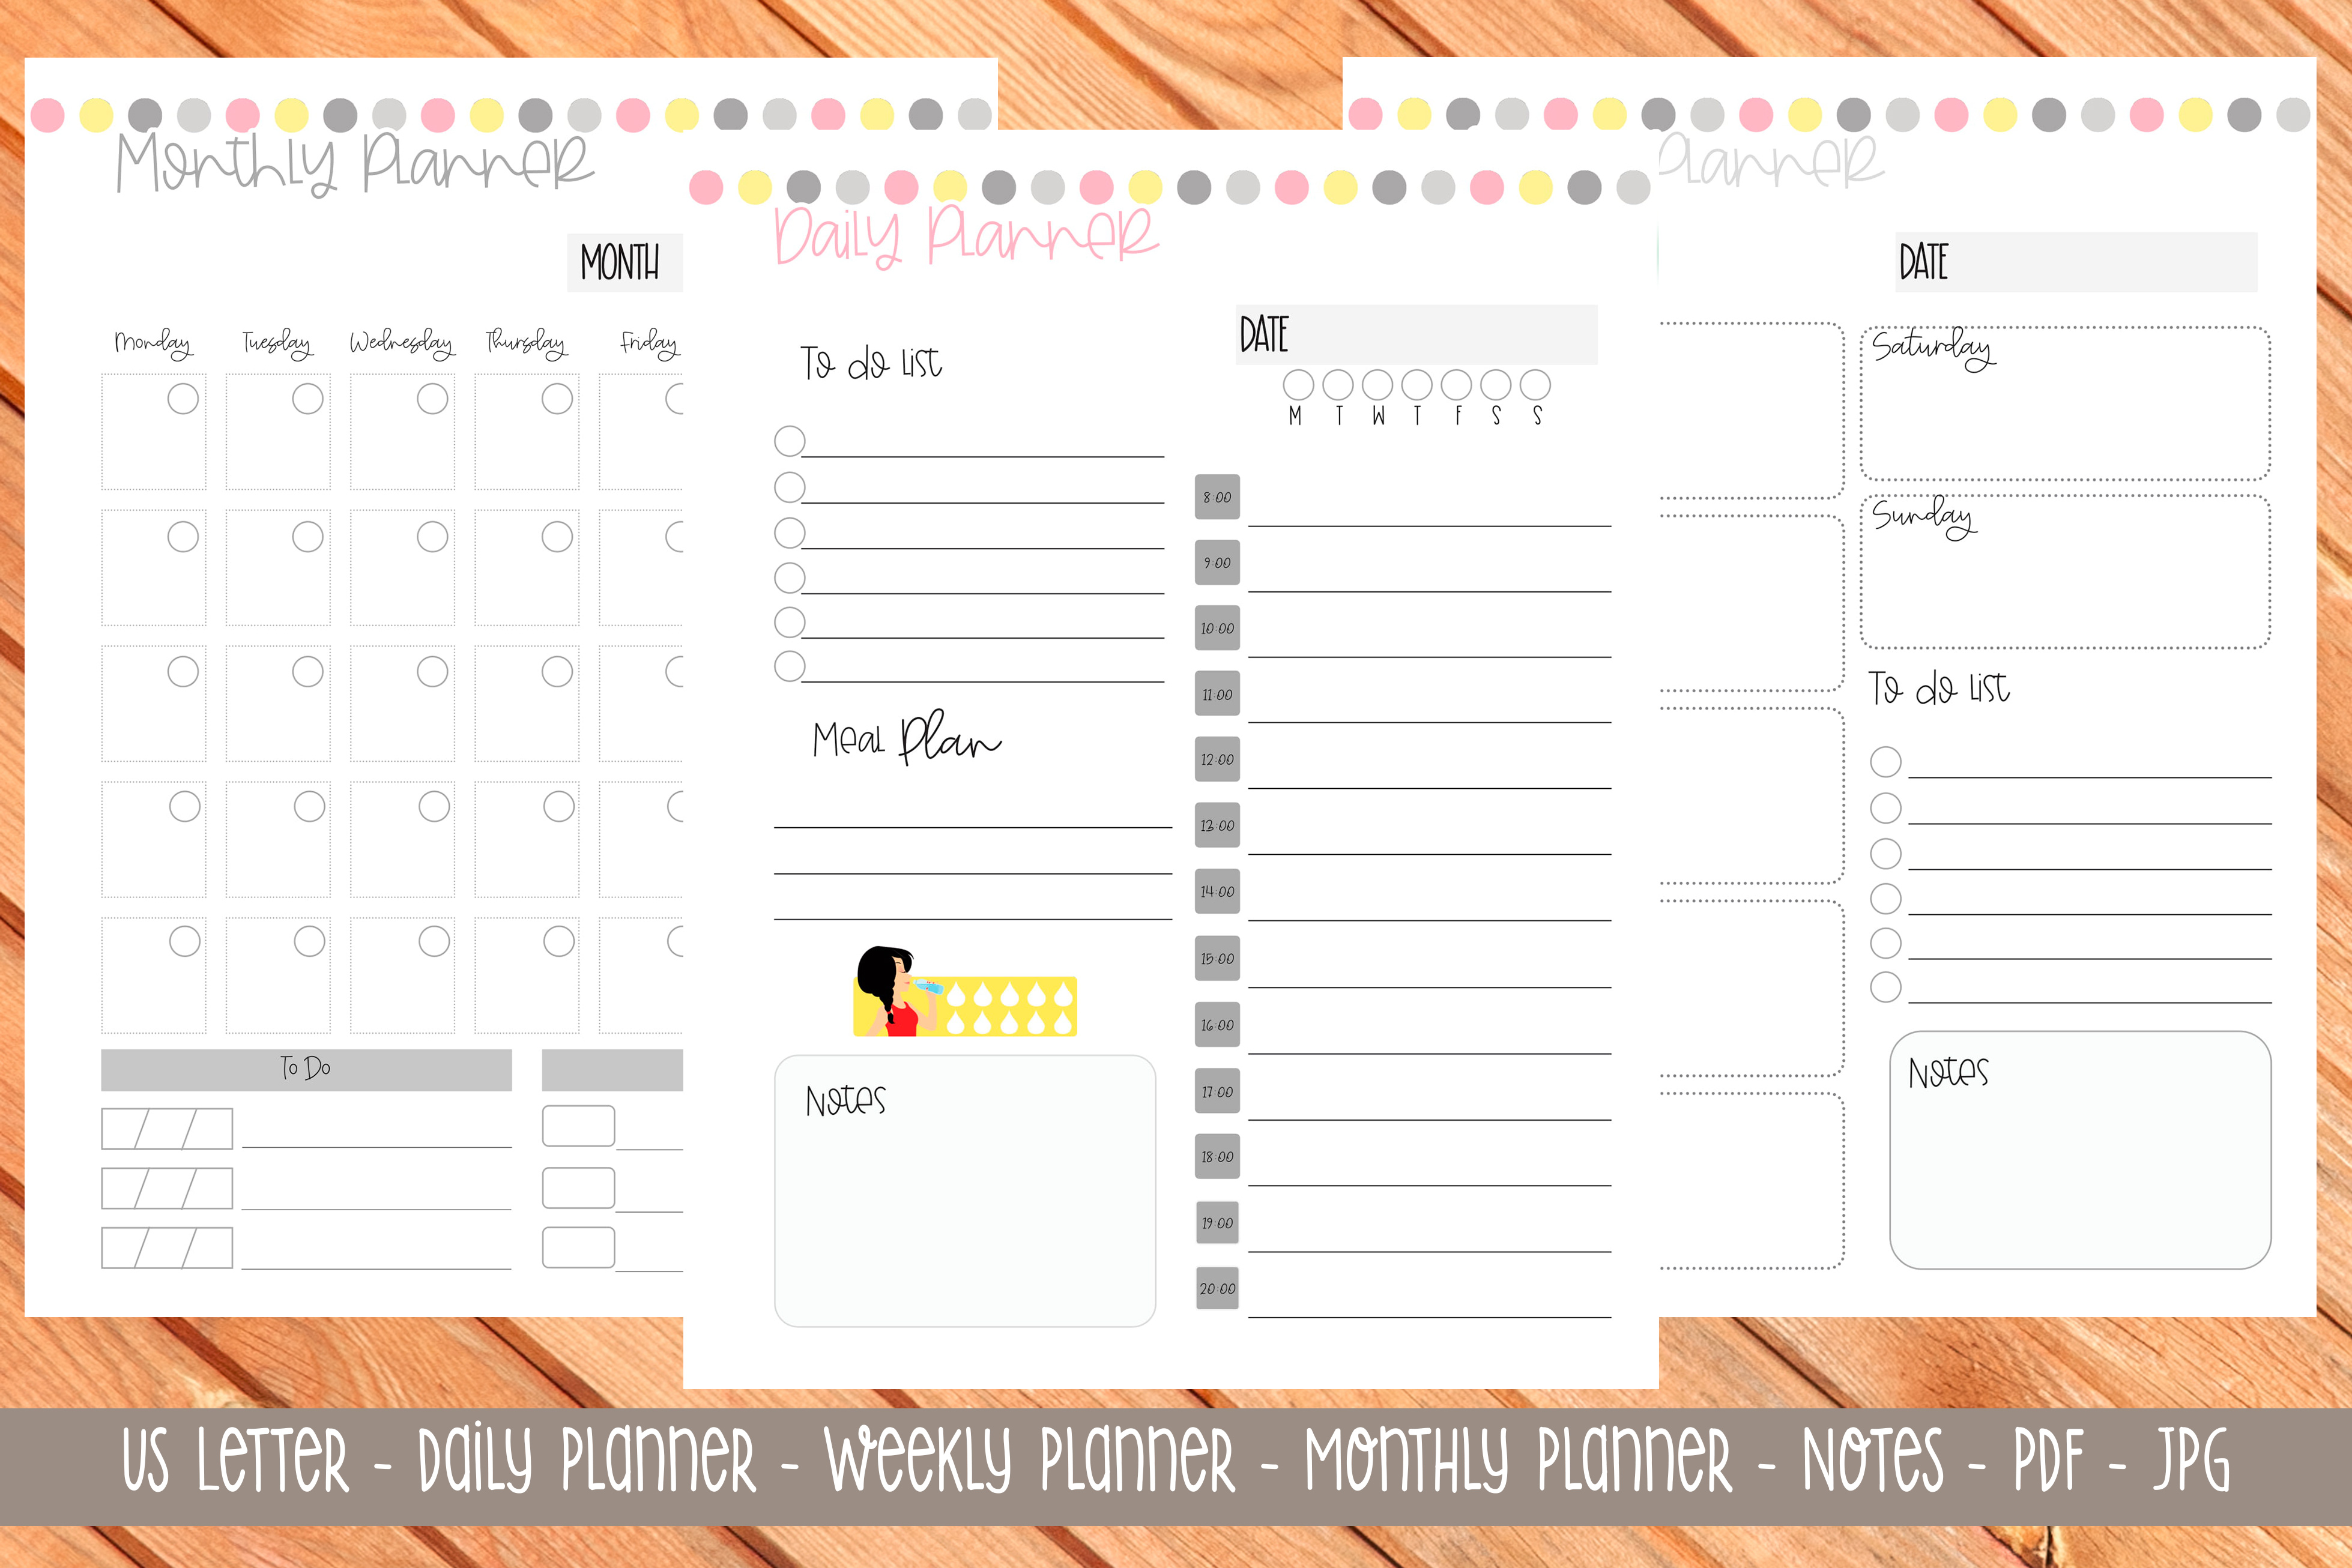 Download Free Us Letter Printable Planner 9 Graphic By Printable Planners for Cricut Explore, Silhouette and other cutting machines.